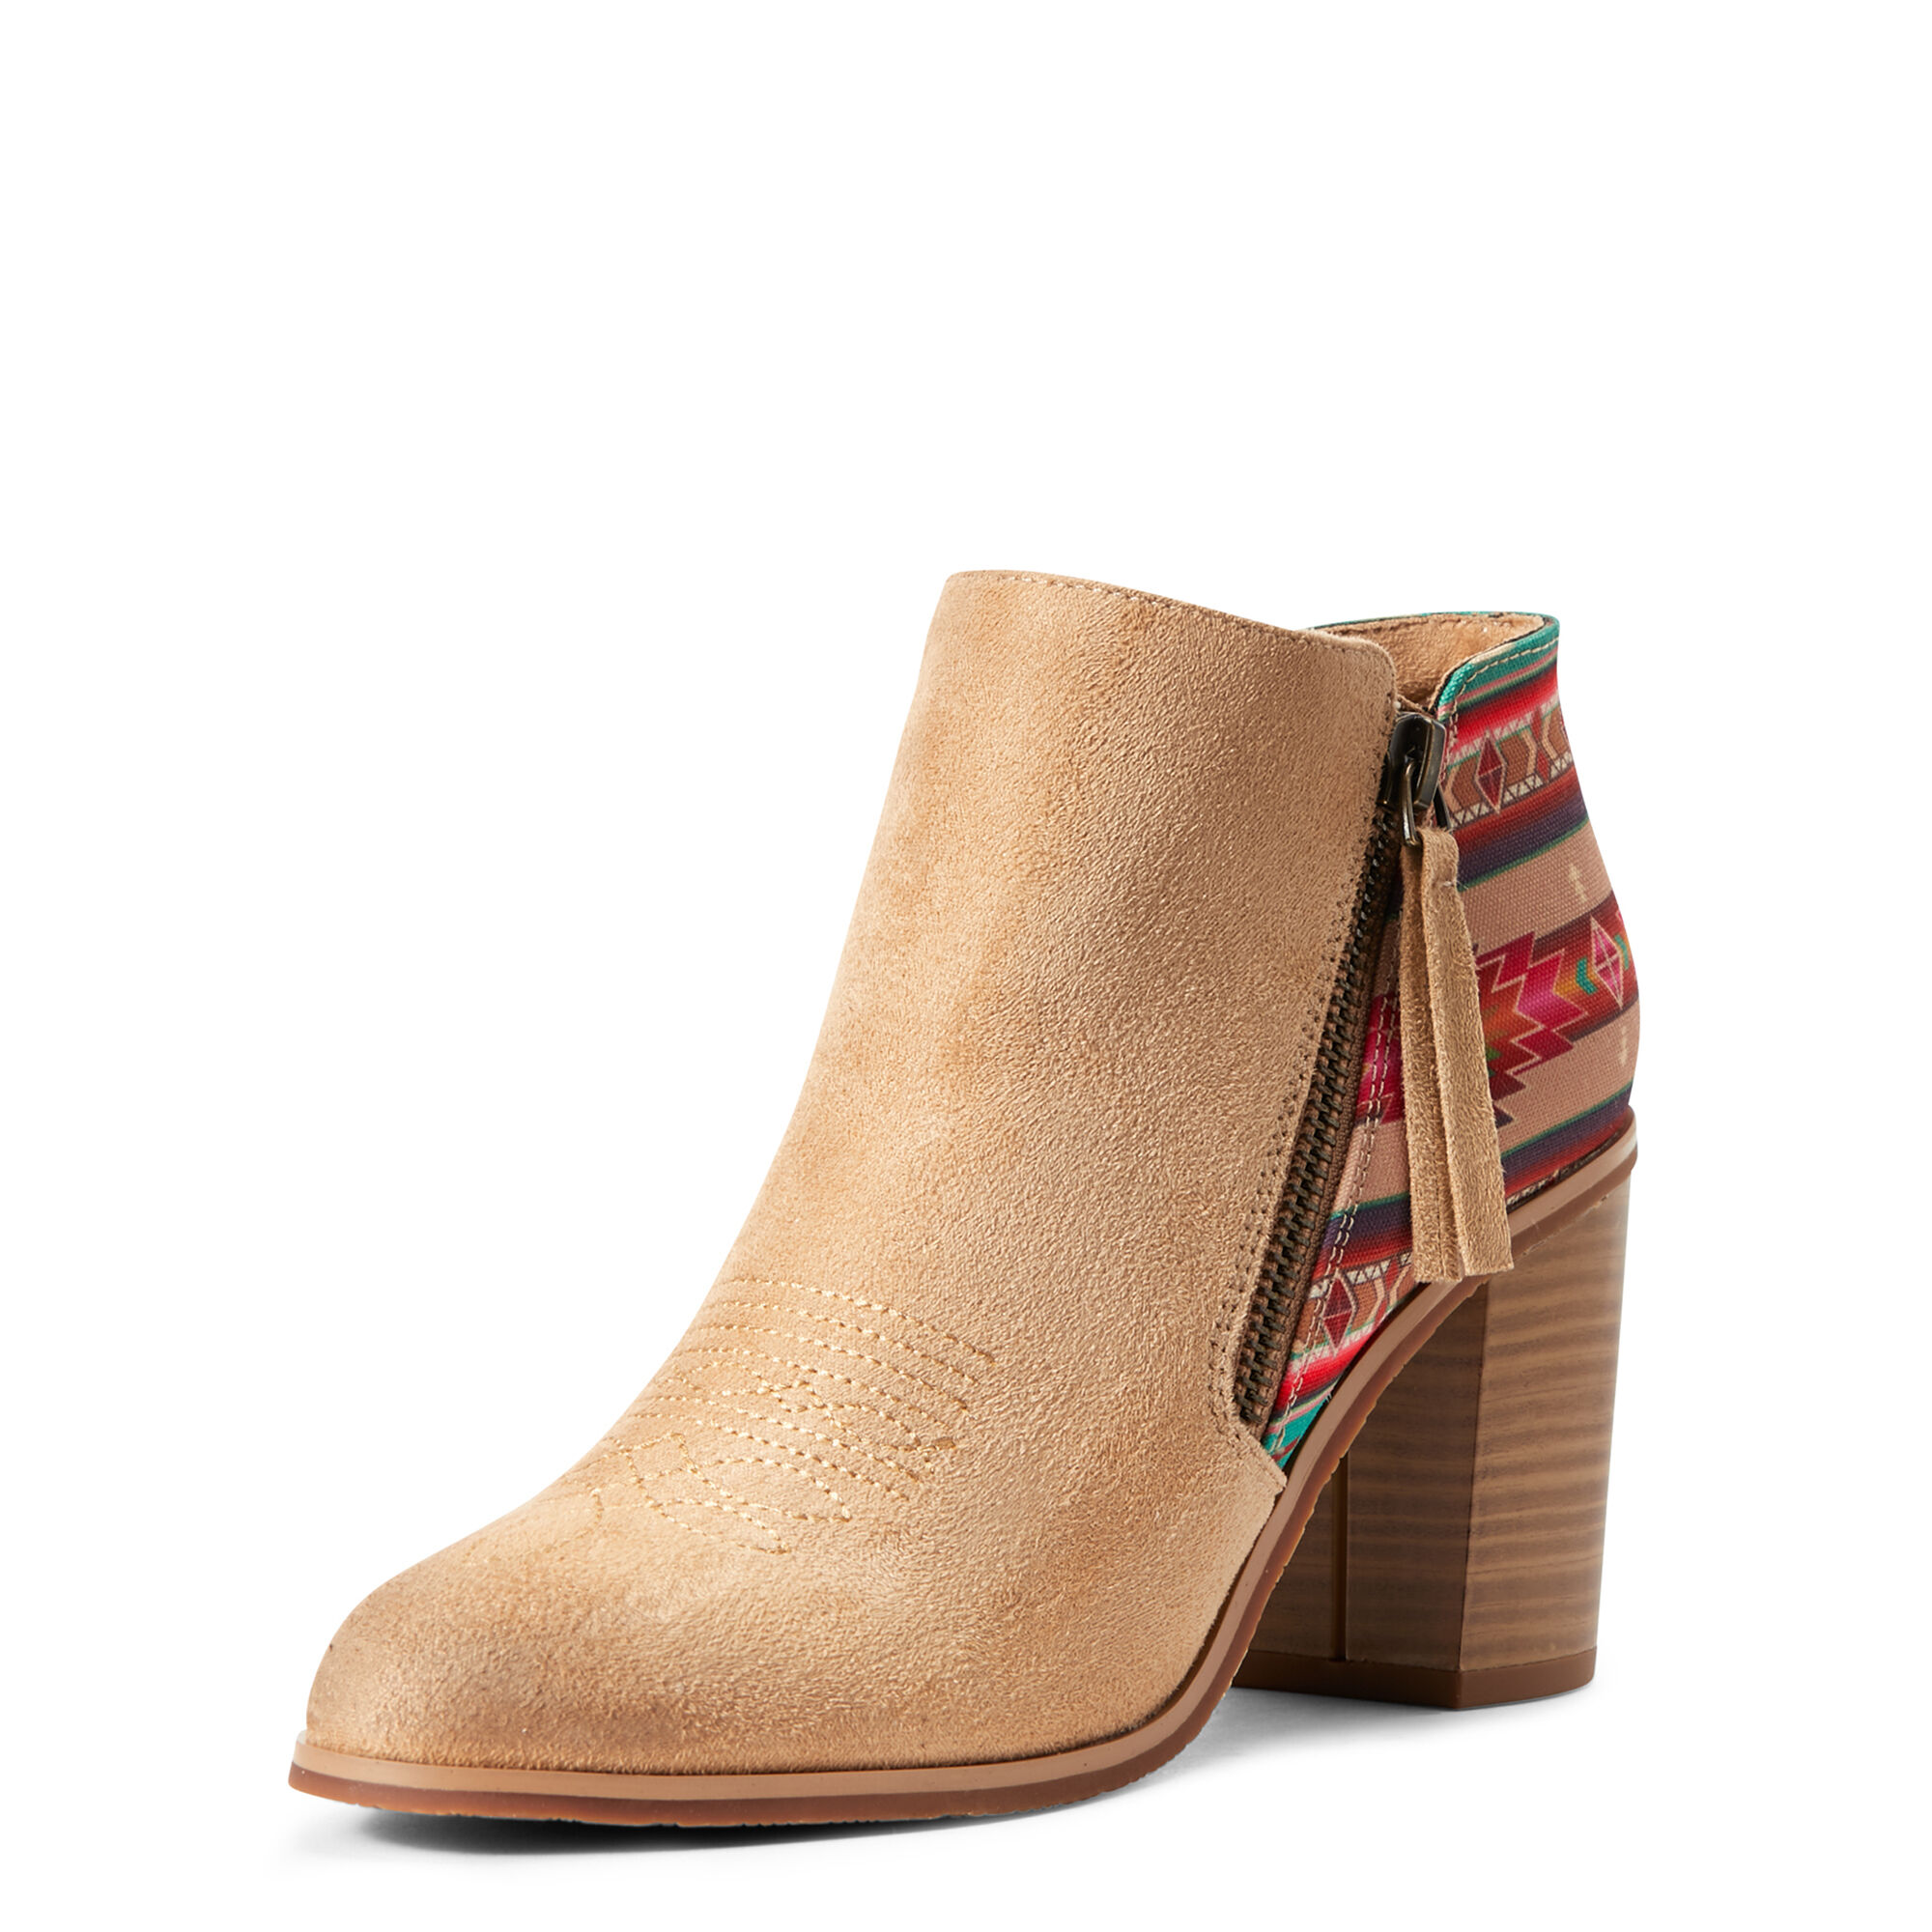 Women's Unbridled Kaylee Boots in Light Tan Suede by Ariat